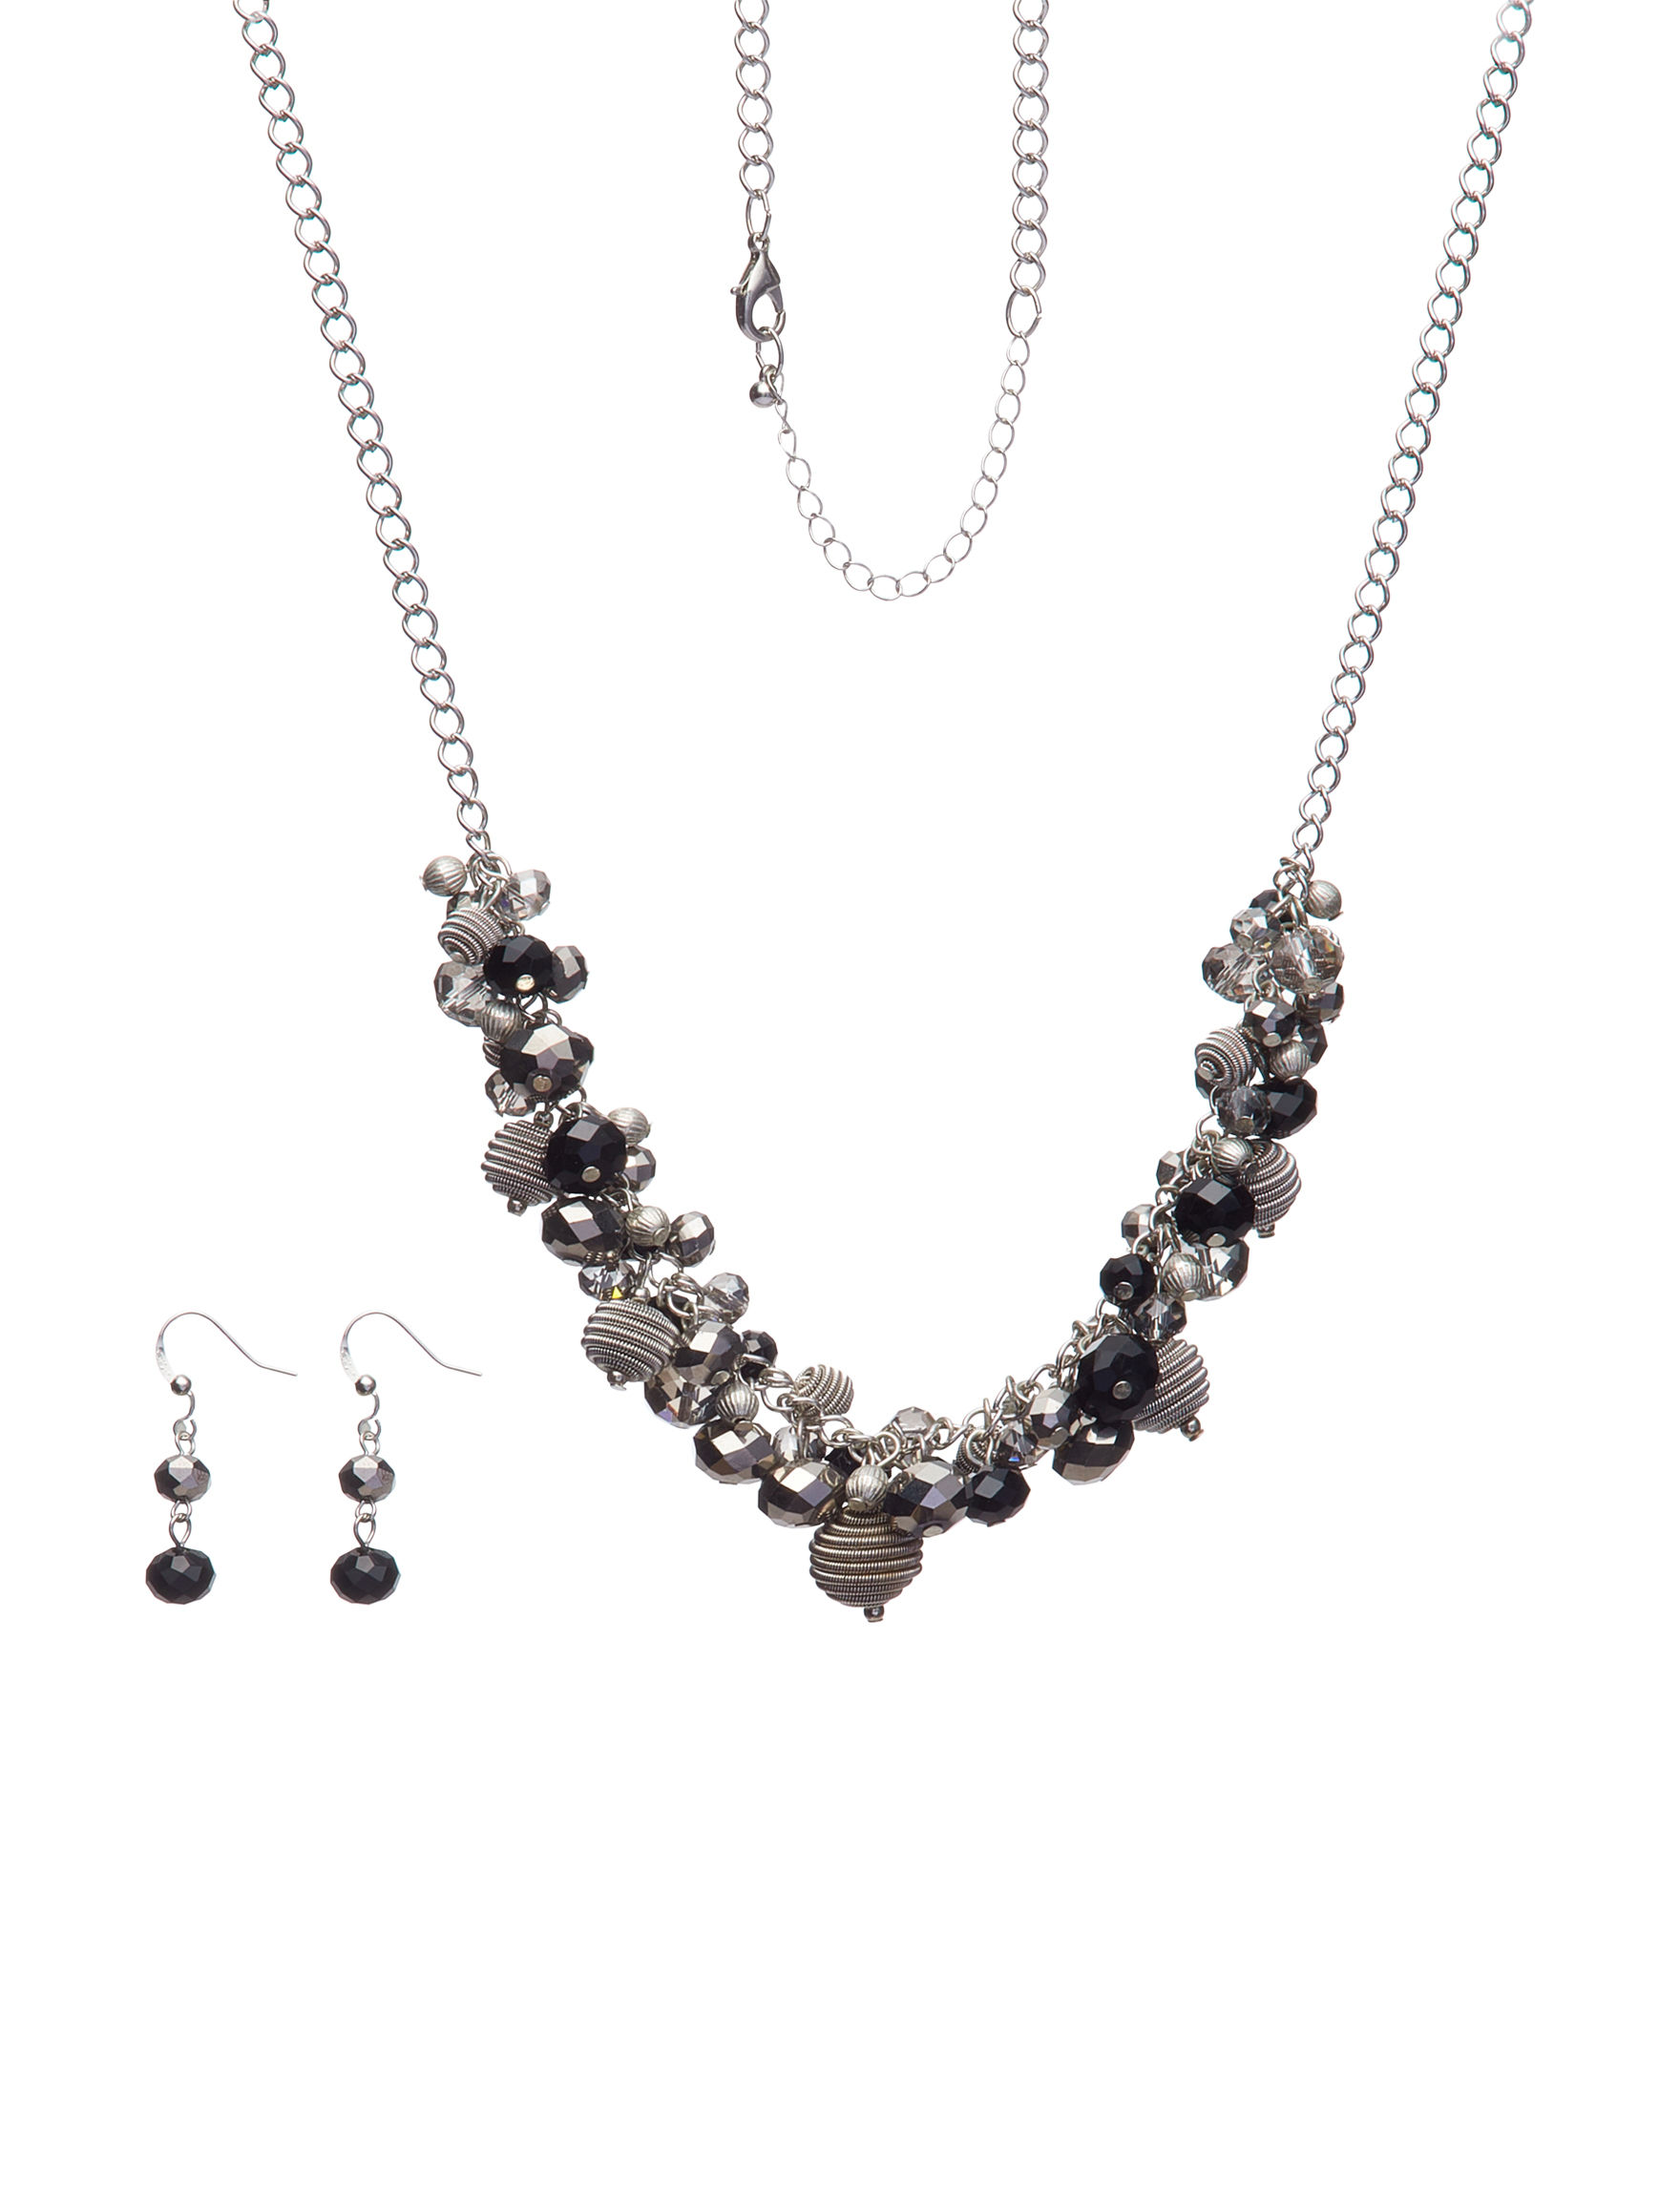 Hannah Silver / Black Drops Earrings Jewelry Sets Necklaces & Pendants Fashion Jewelry